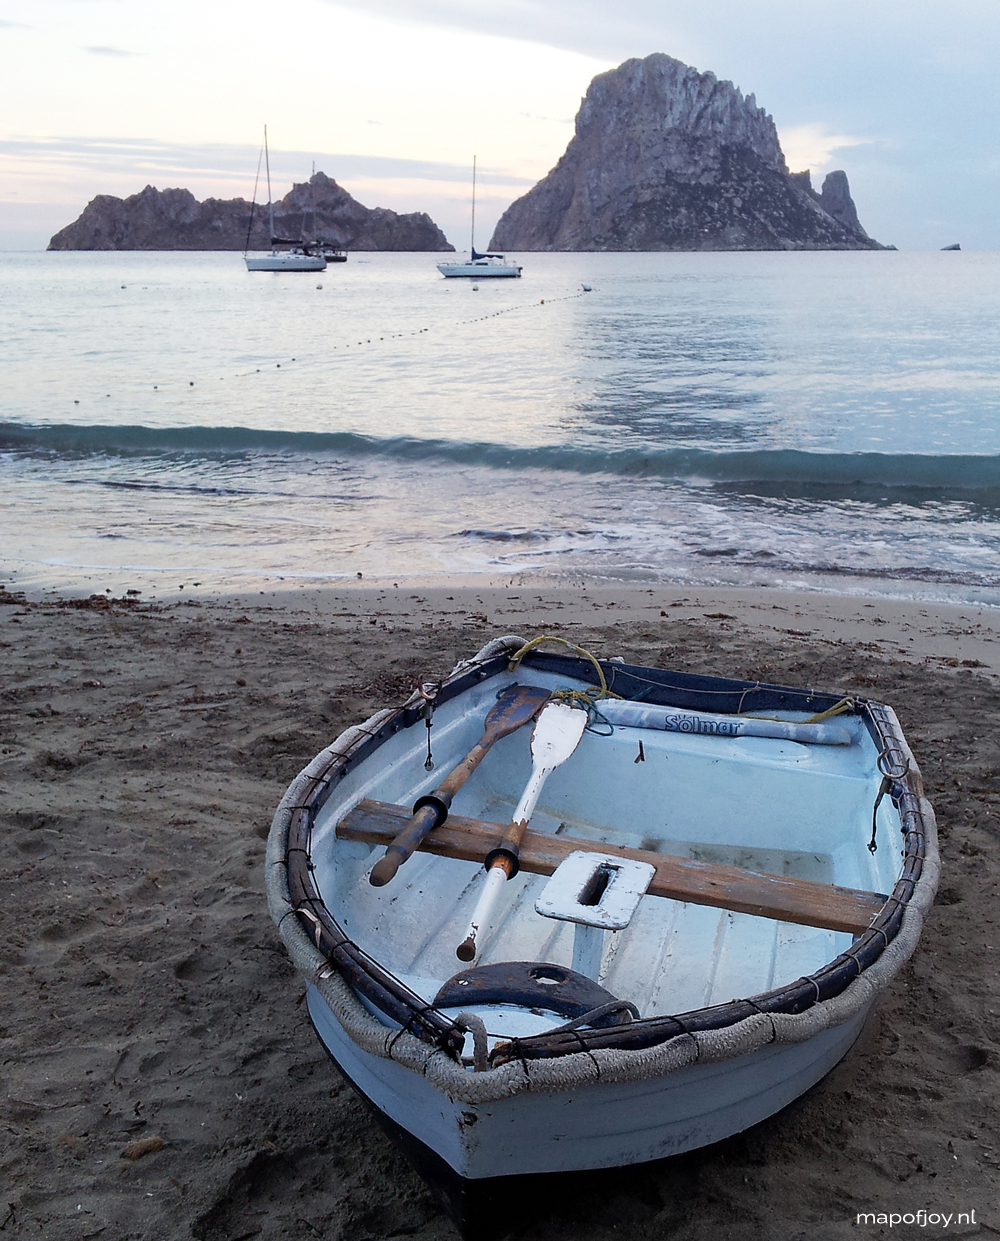 Cala d'Hort, beautiful beach, Ibiza, Spain - Map of Joy